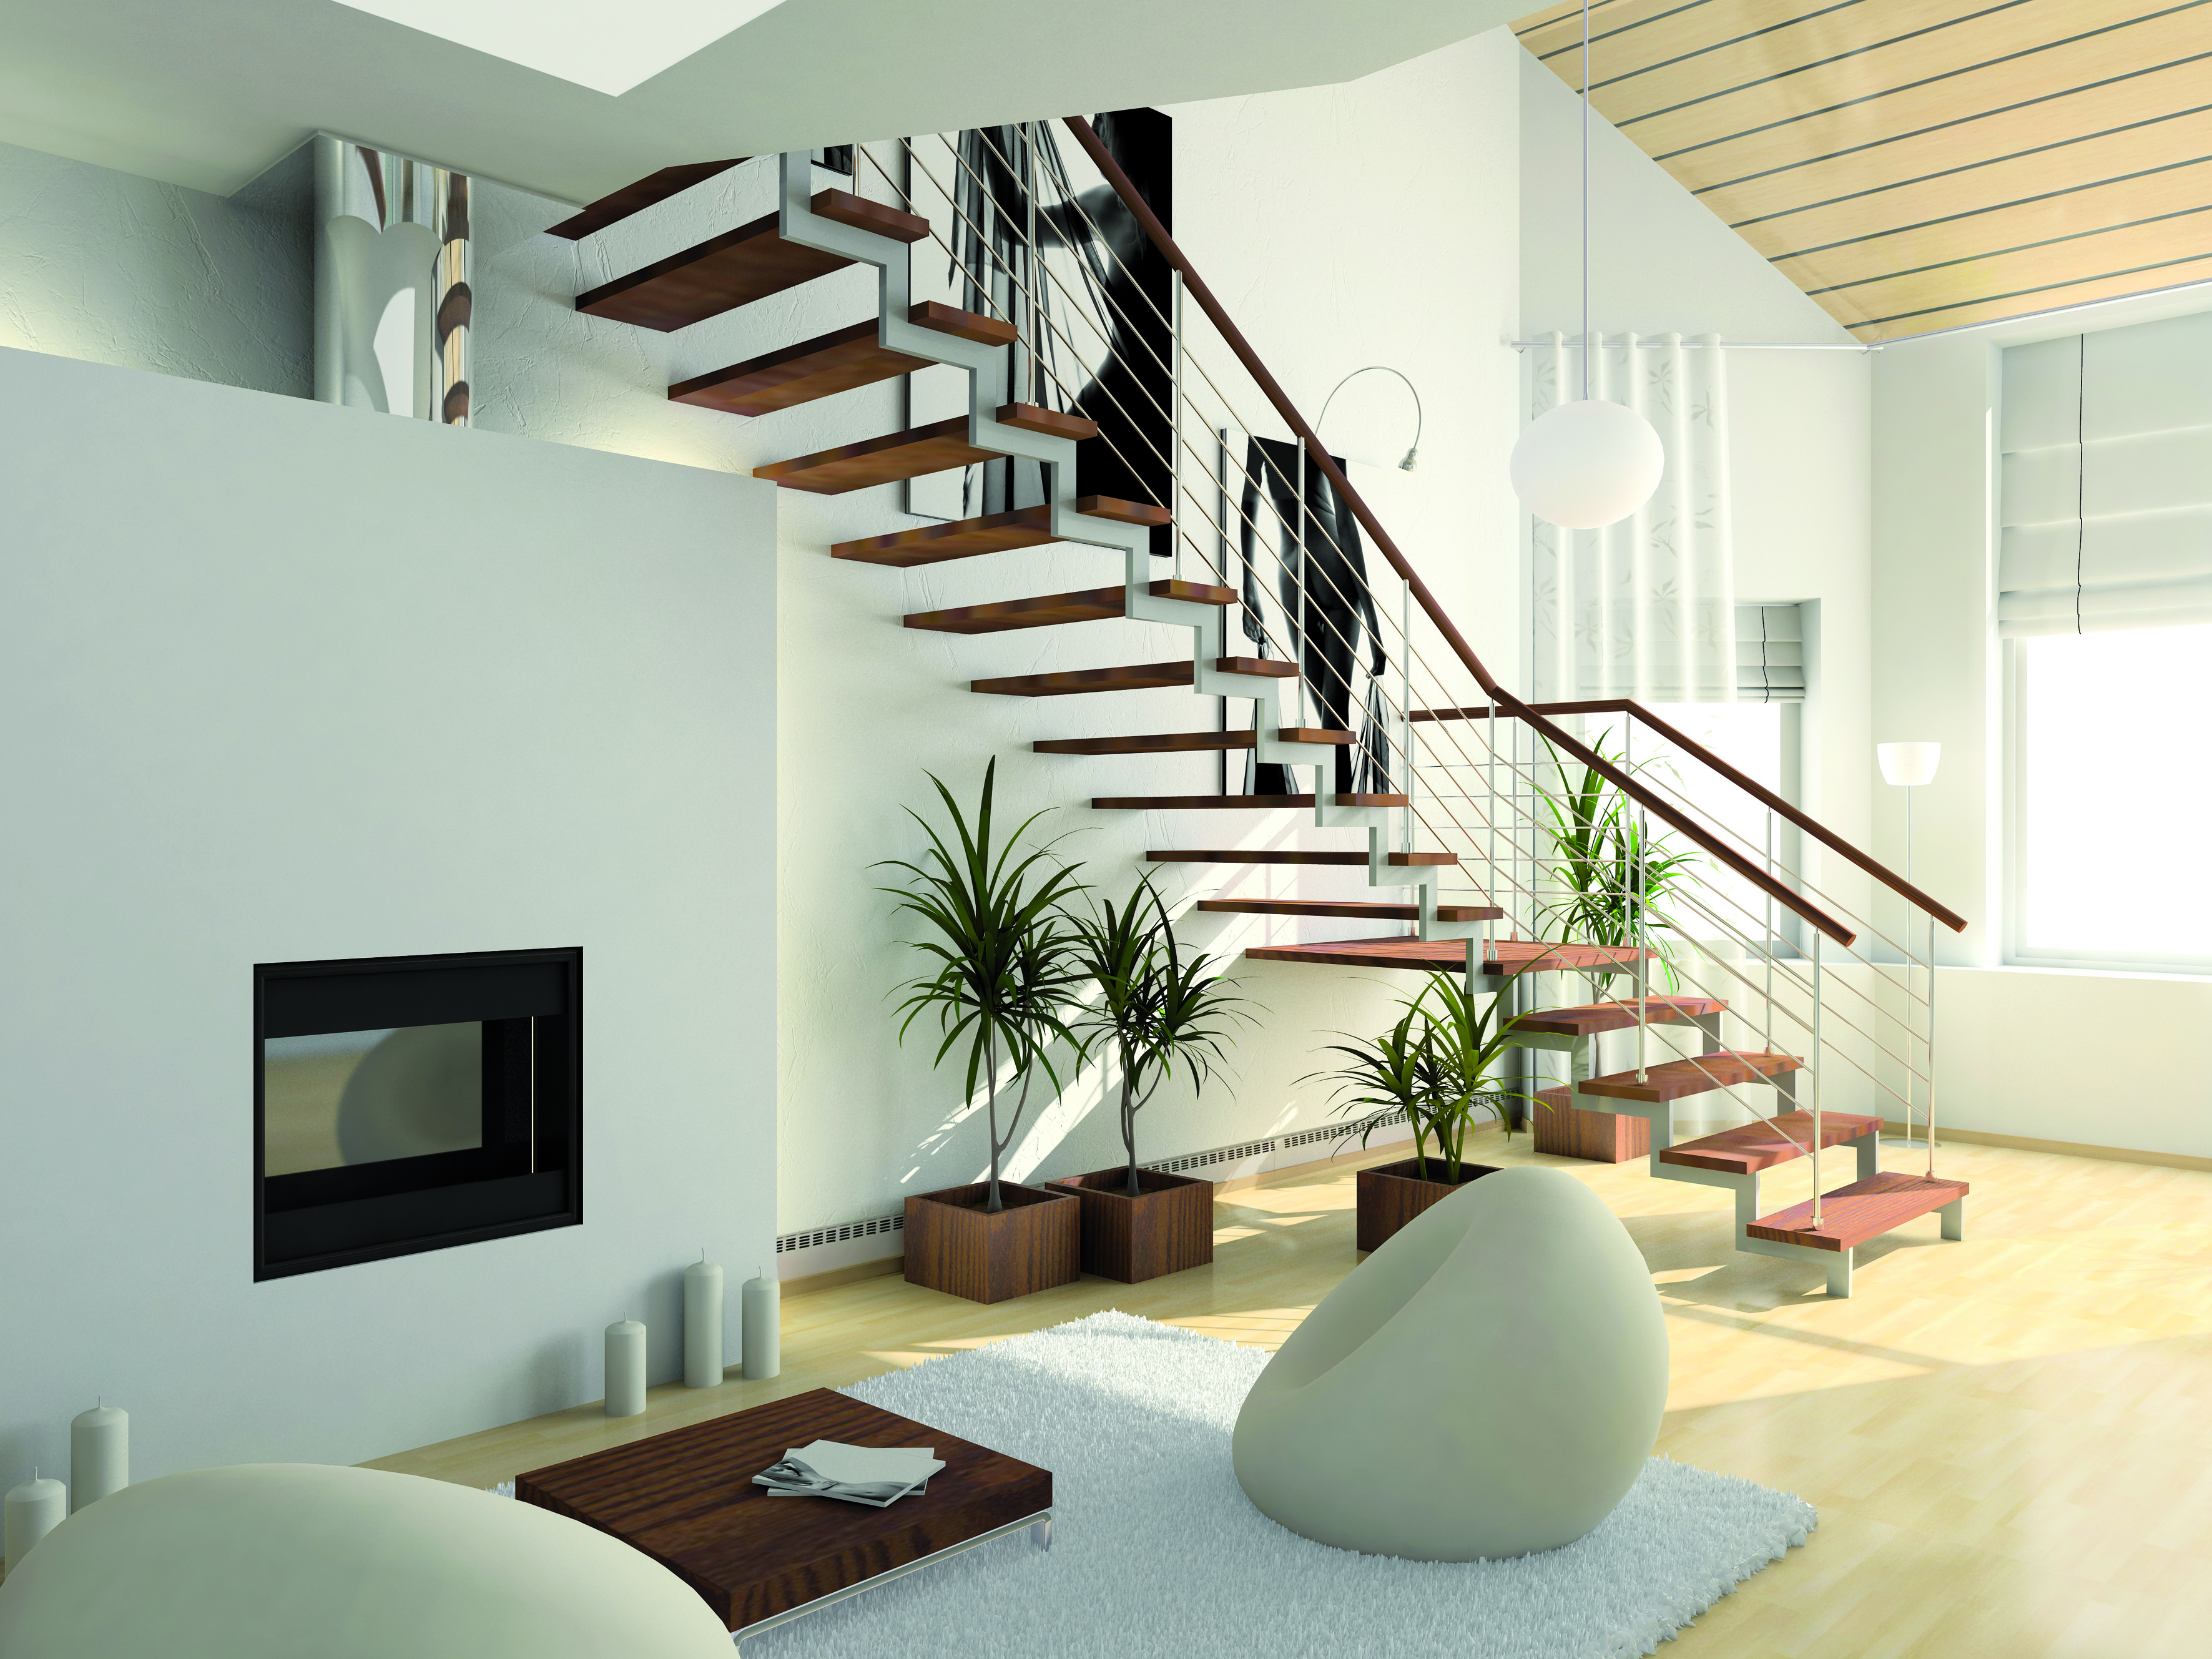 Gallery skirting heating & SKIRTING HEATING - Variotherm